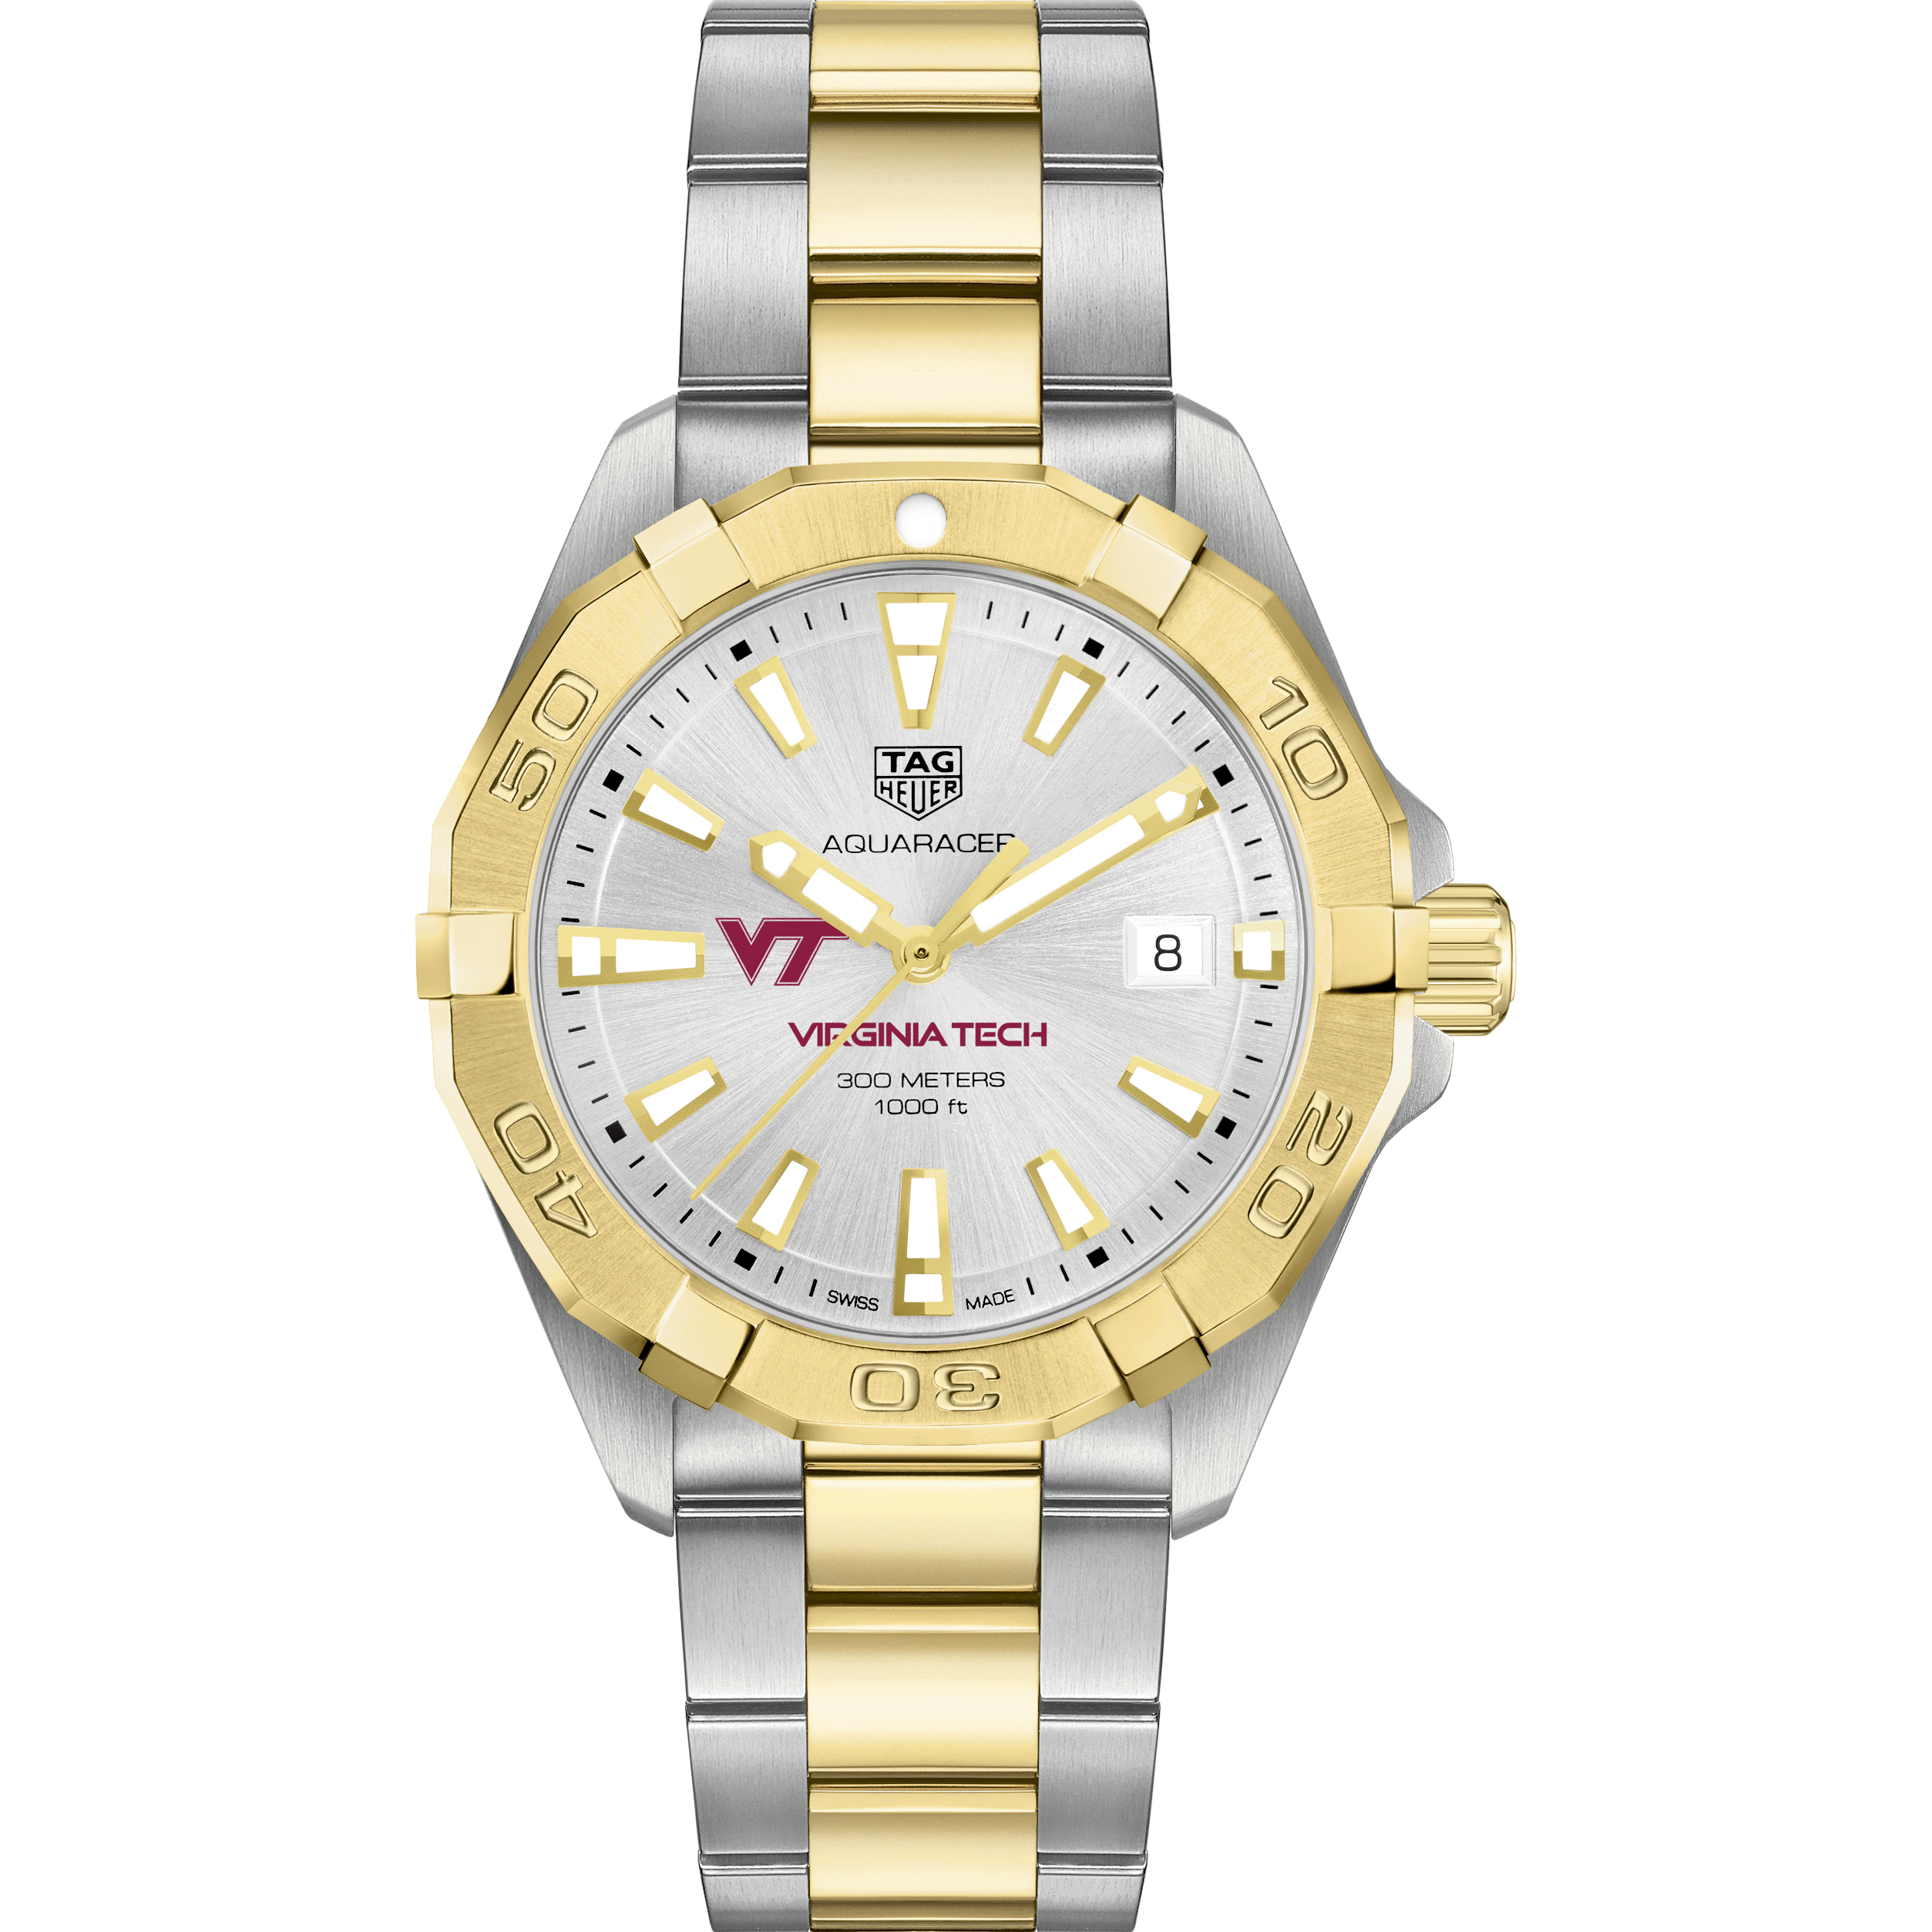 Virginia Tech Men's TAG Heuer Two-Tone Aquaracer - Image 2